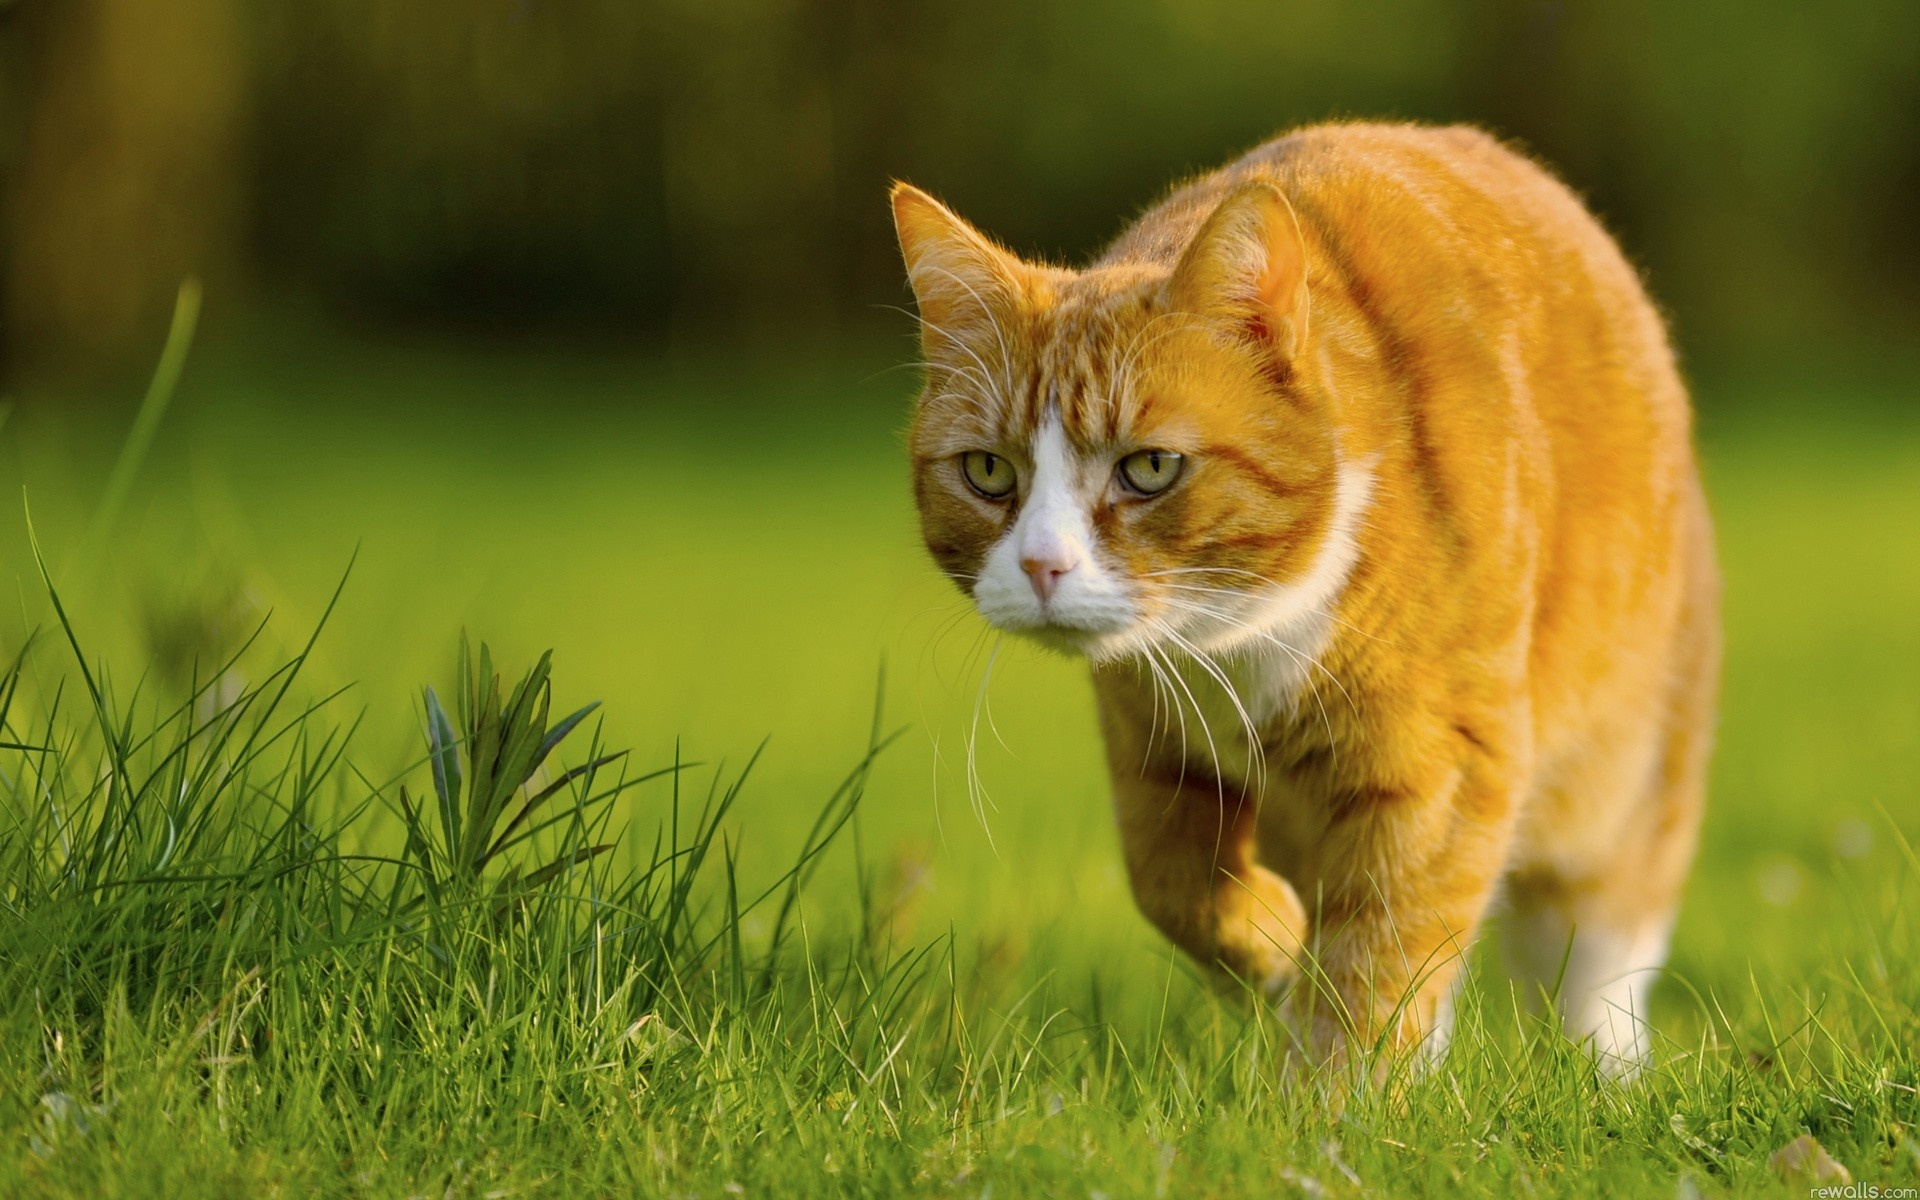 Cute Love Wallpapers Hd Full Size Download Wallpaper 1920x1200 Yellow Cat Preying Green